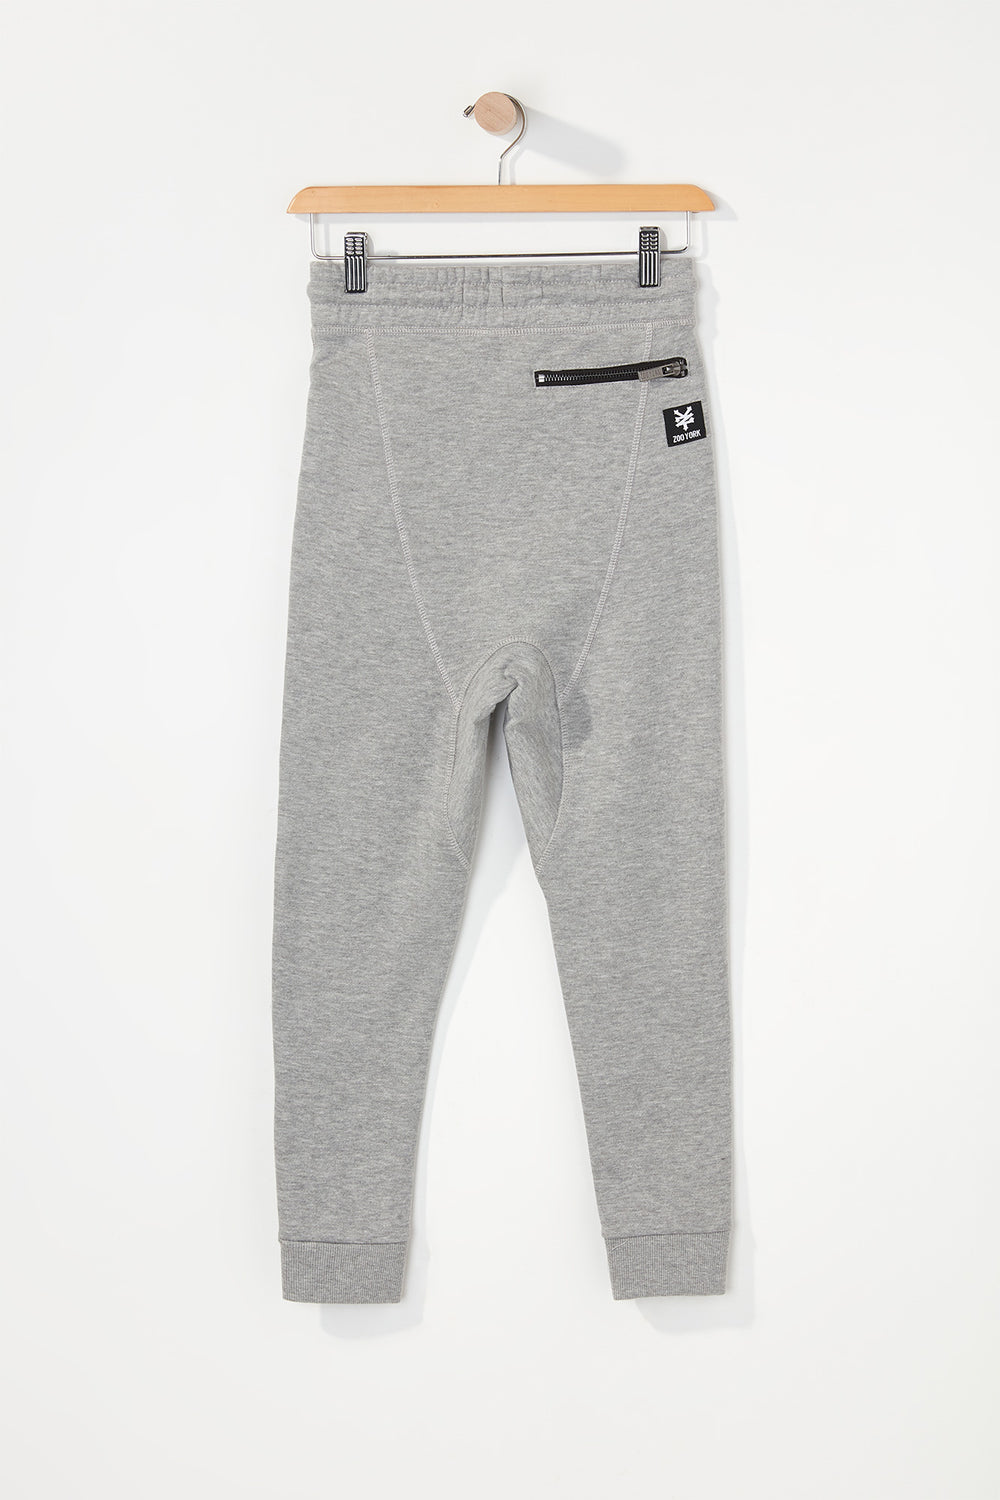 Zoo York Boys 3-Pocket Joggers Heather Grey